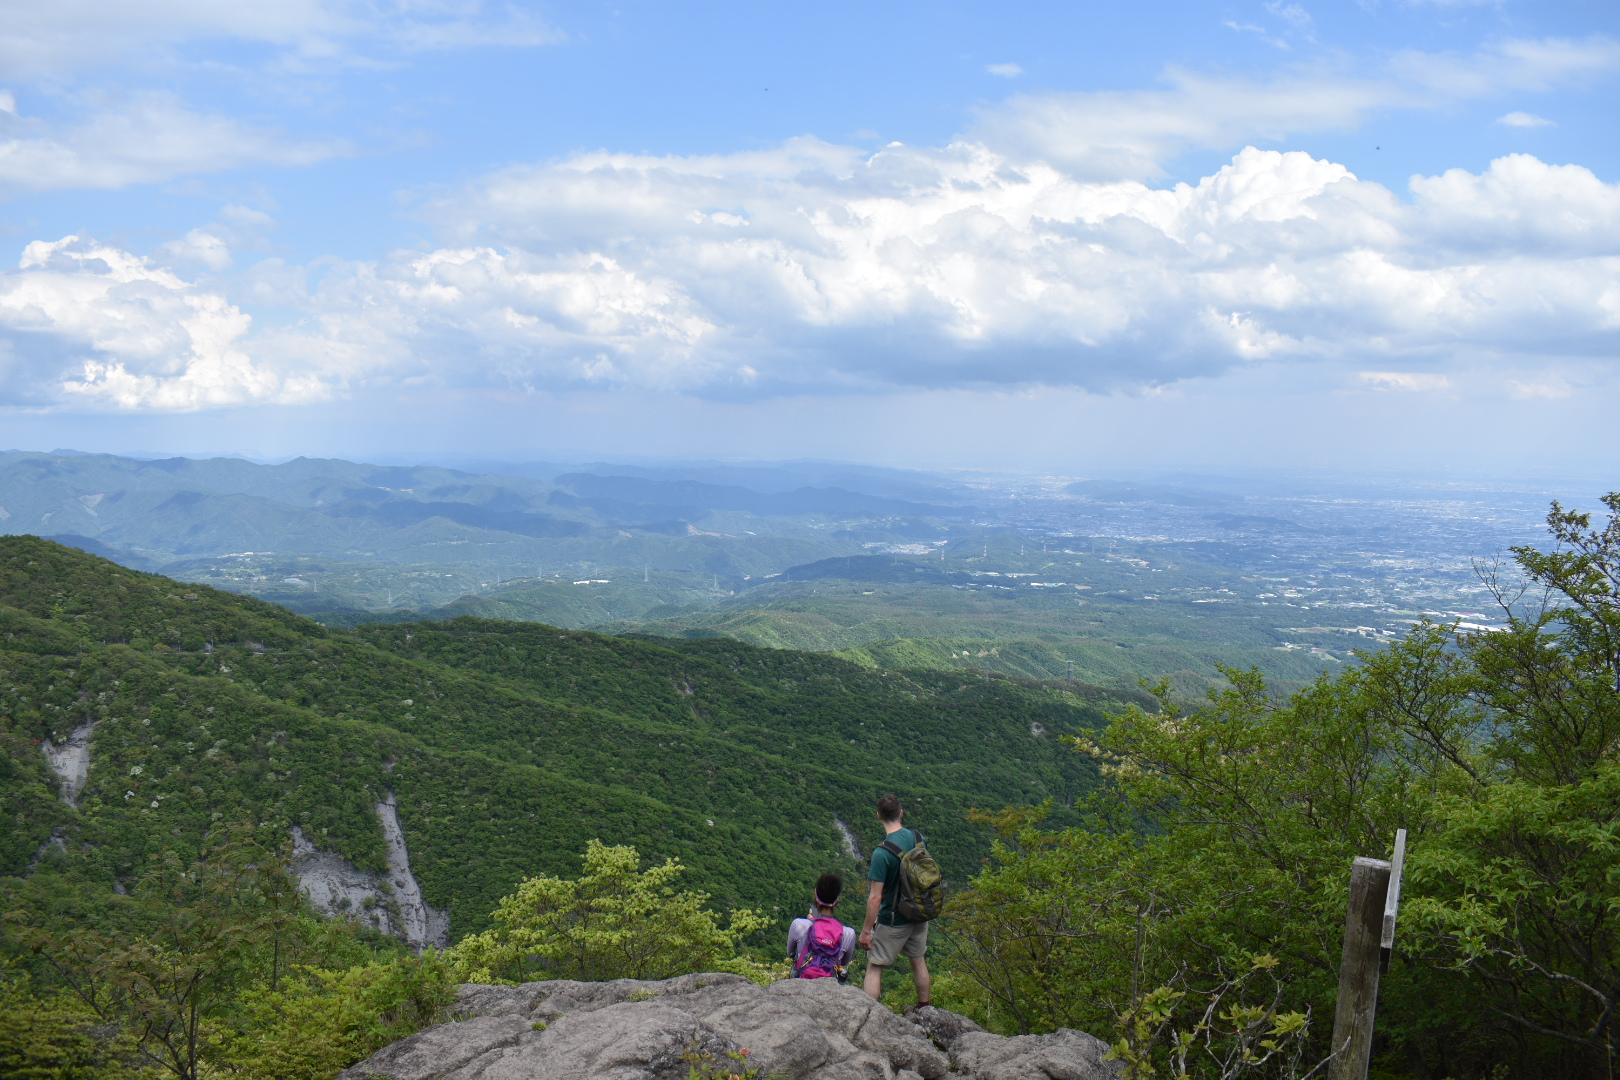 2 hikers looking out at a view of mountains and towns in the distance from Hisashi Iwa, Mt. Akagi